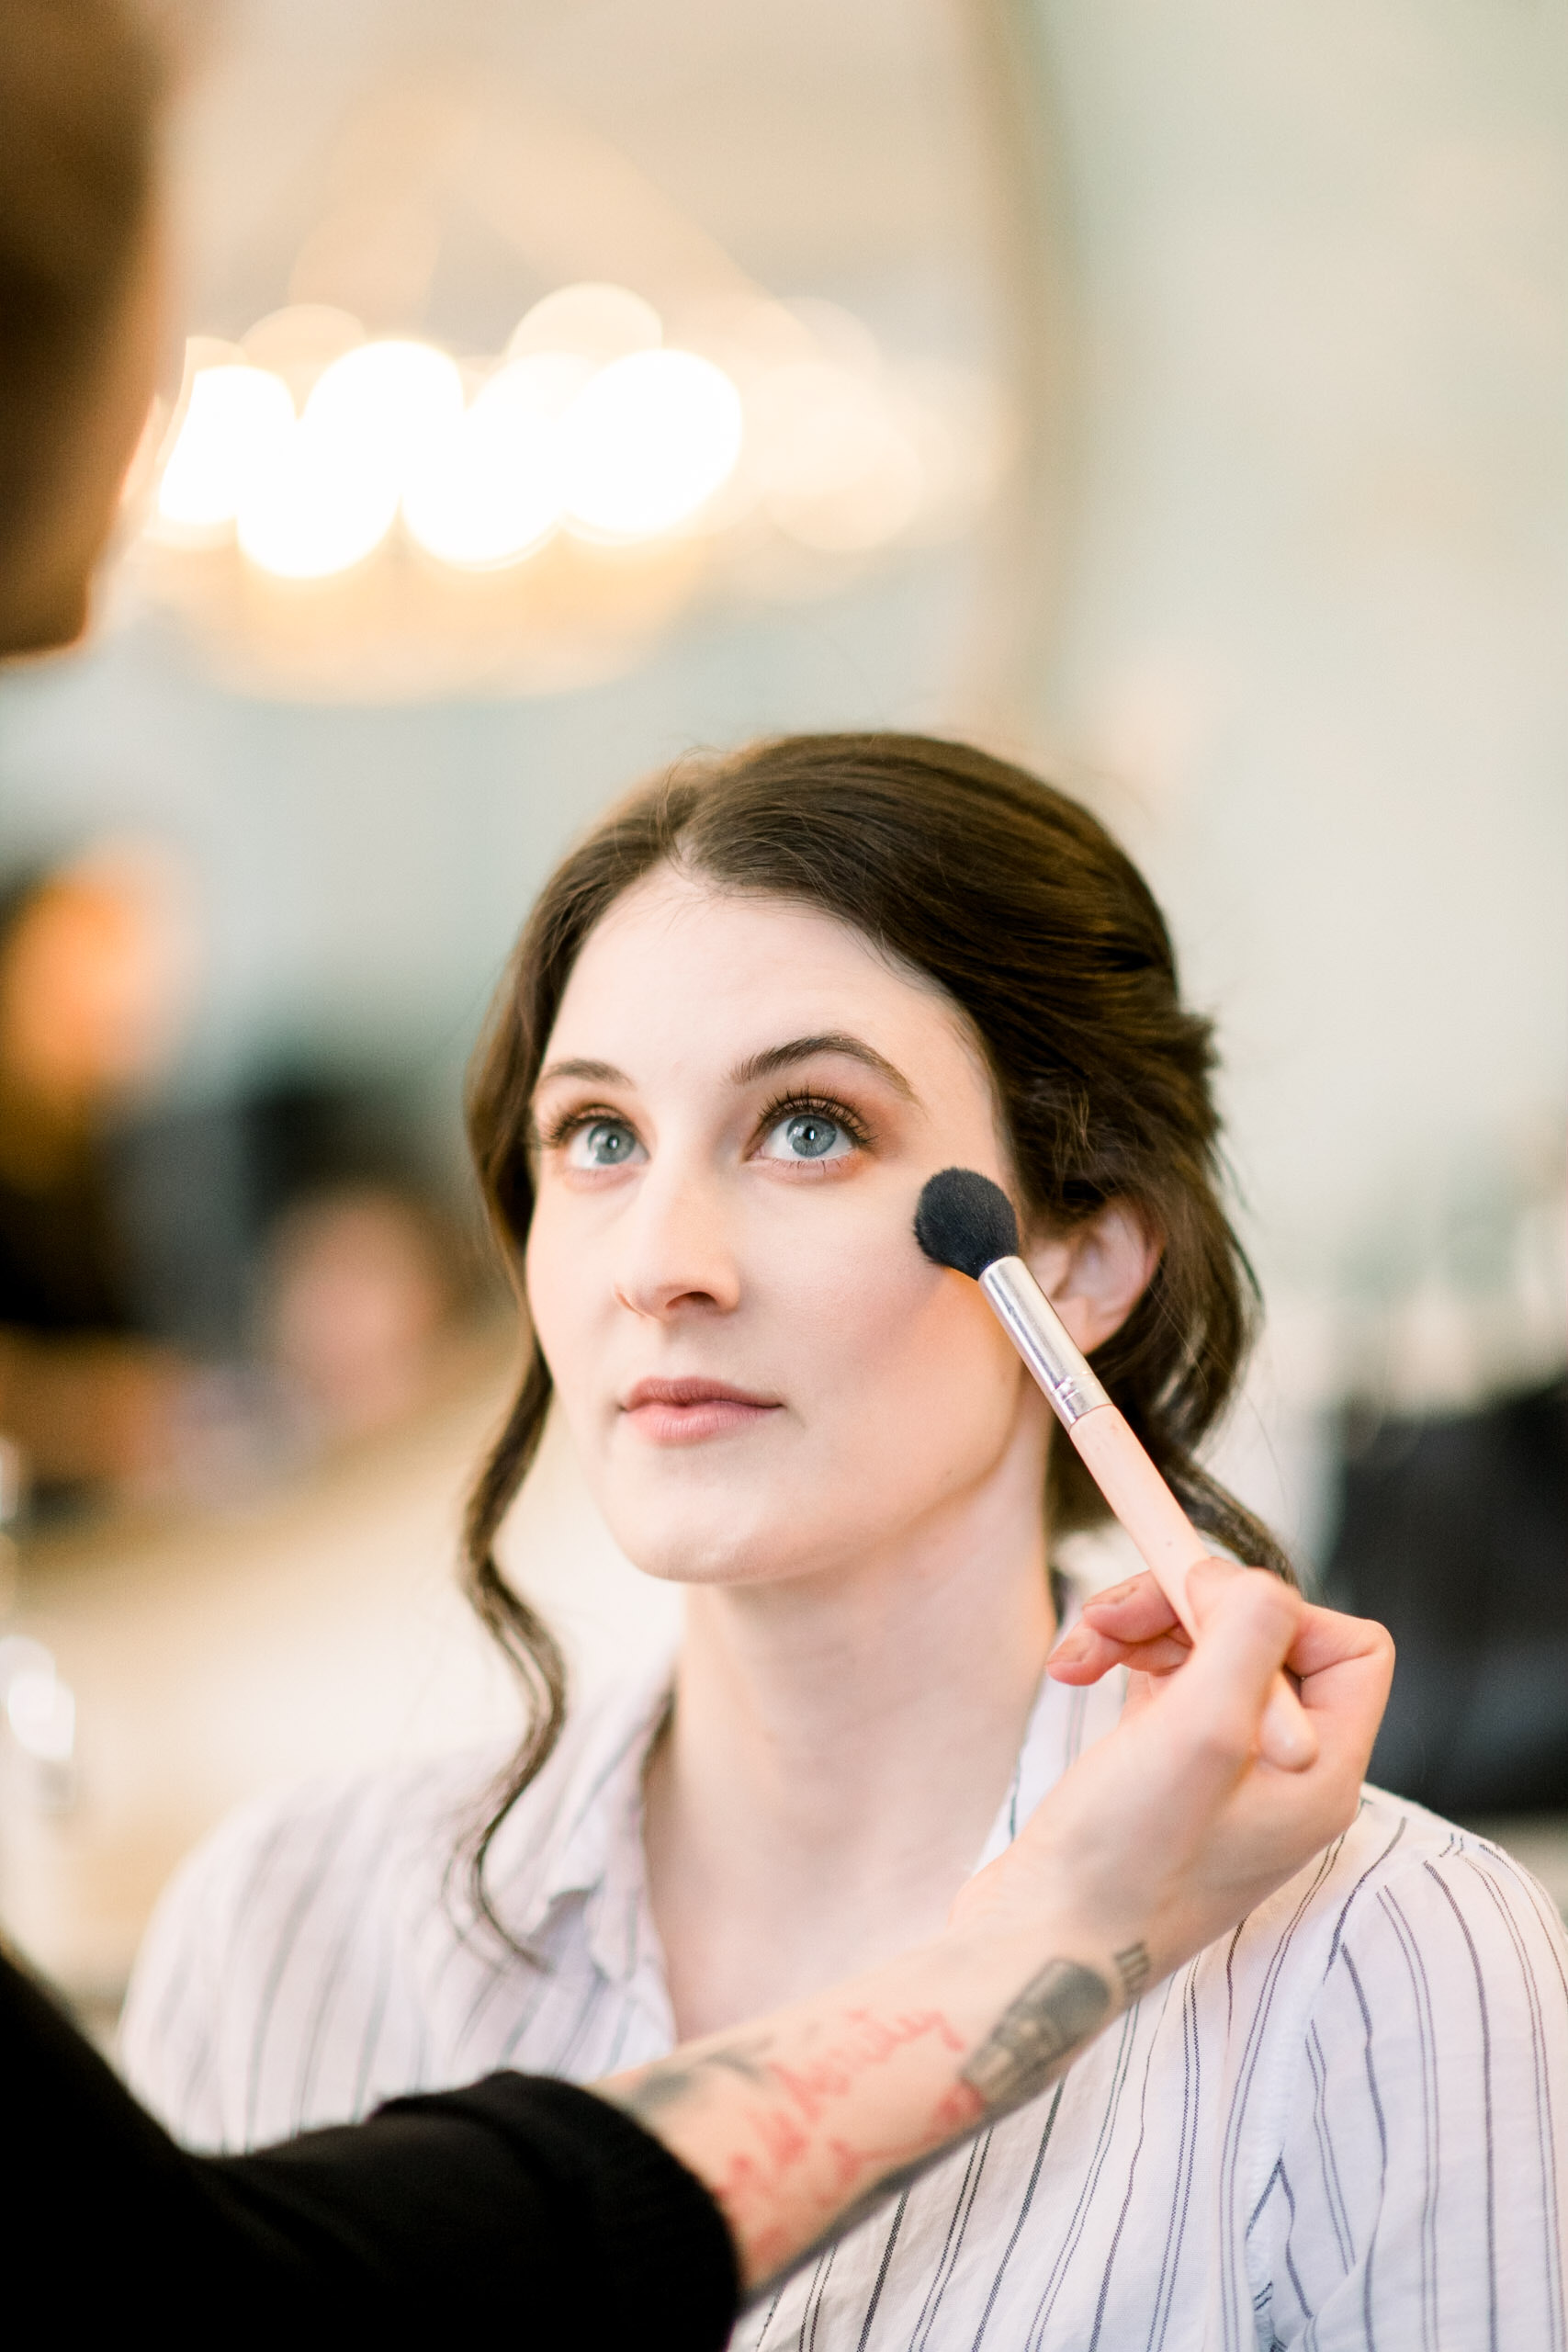 Bridal wedding makeup for Pittsburgh wedding at Hotel Monaco planned by Exhale Events. Find more modern wedding ideas at exhale-events.com!